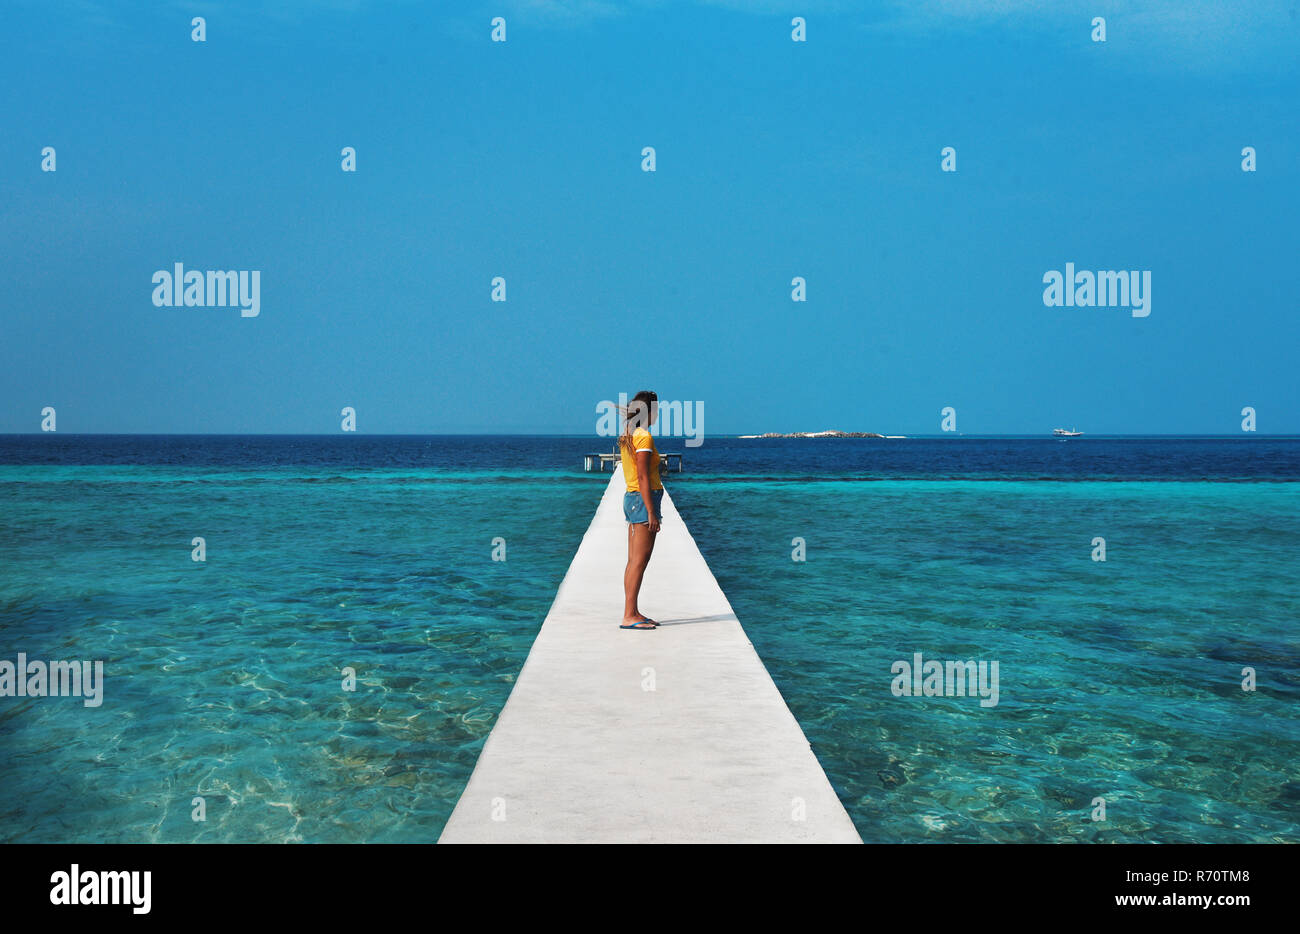 Female looking out to sea surrounded by reef on holiday in Maldives - Stock Image